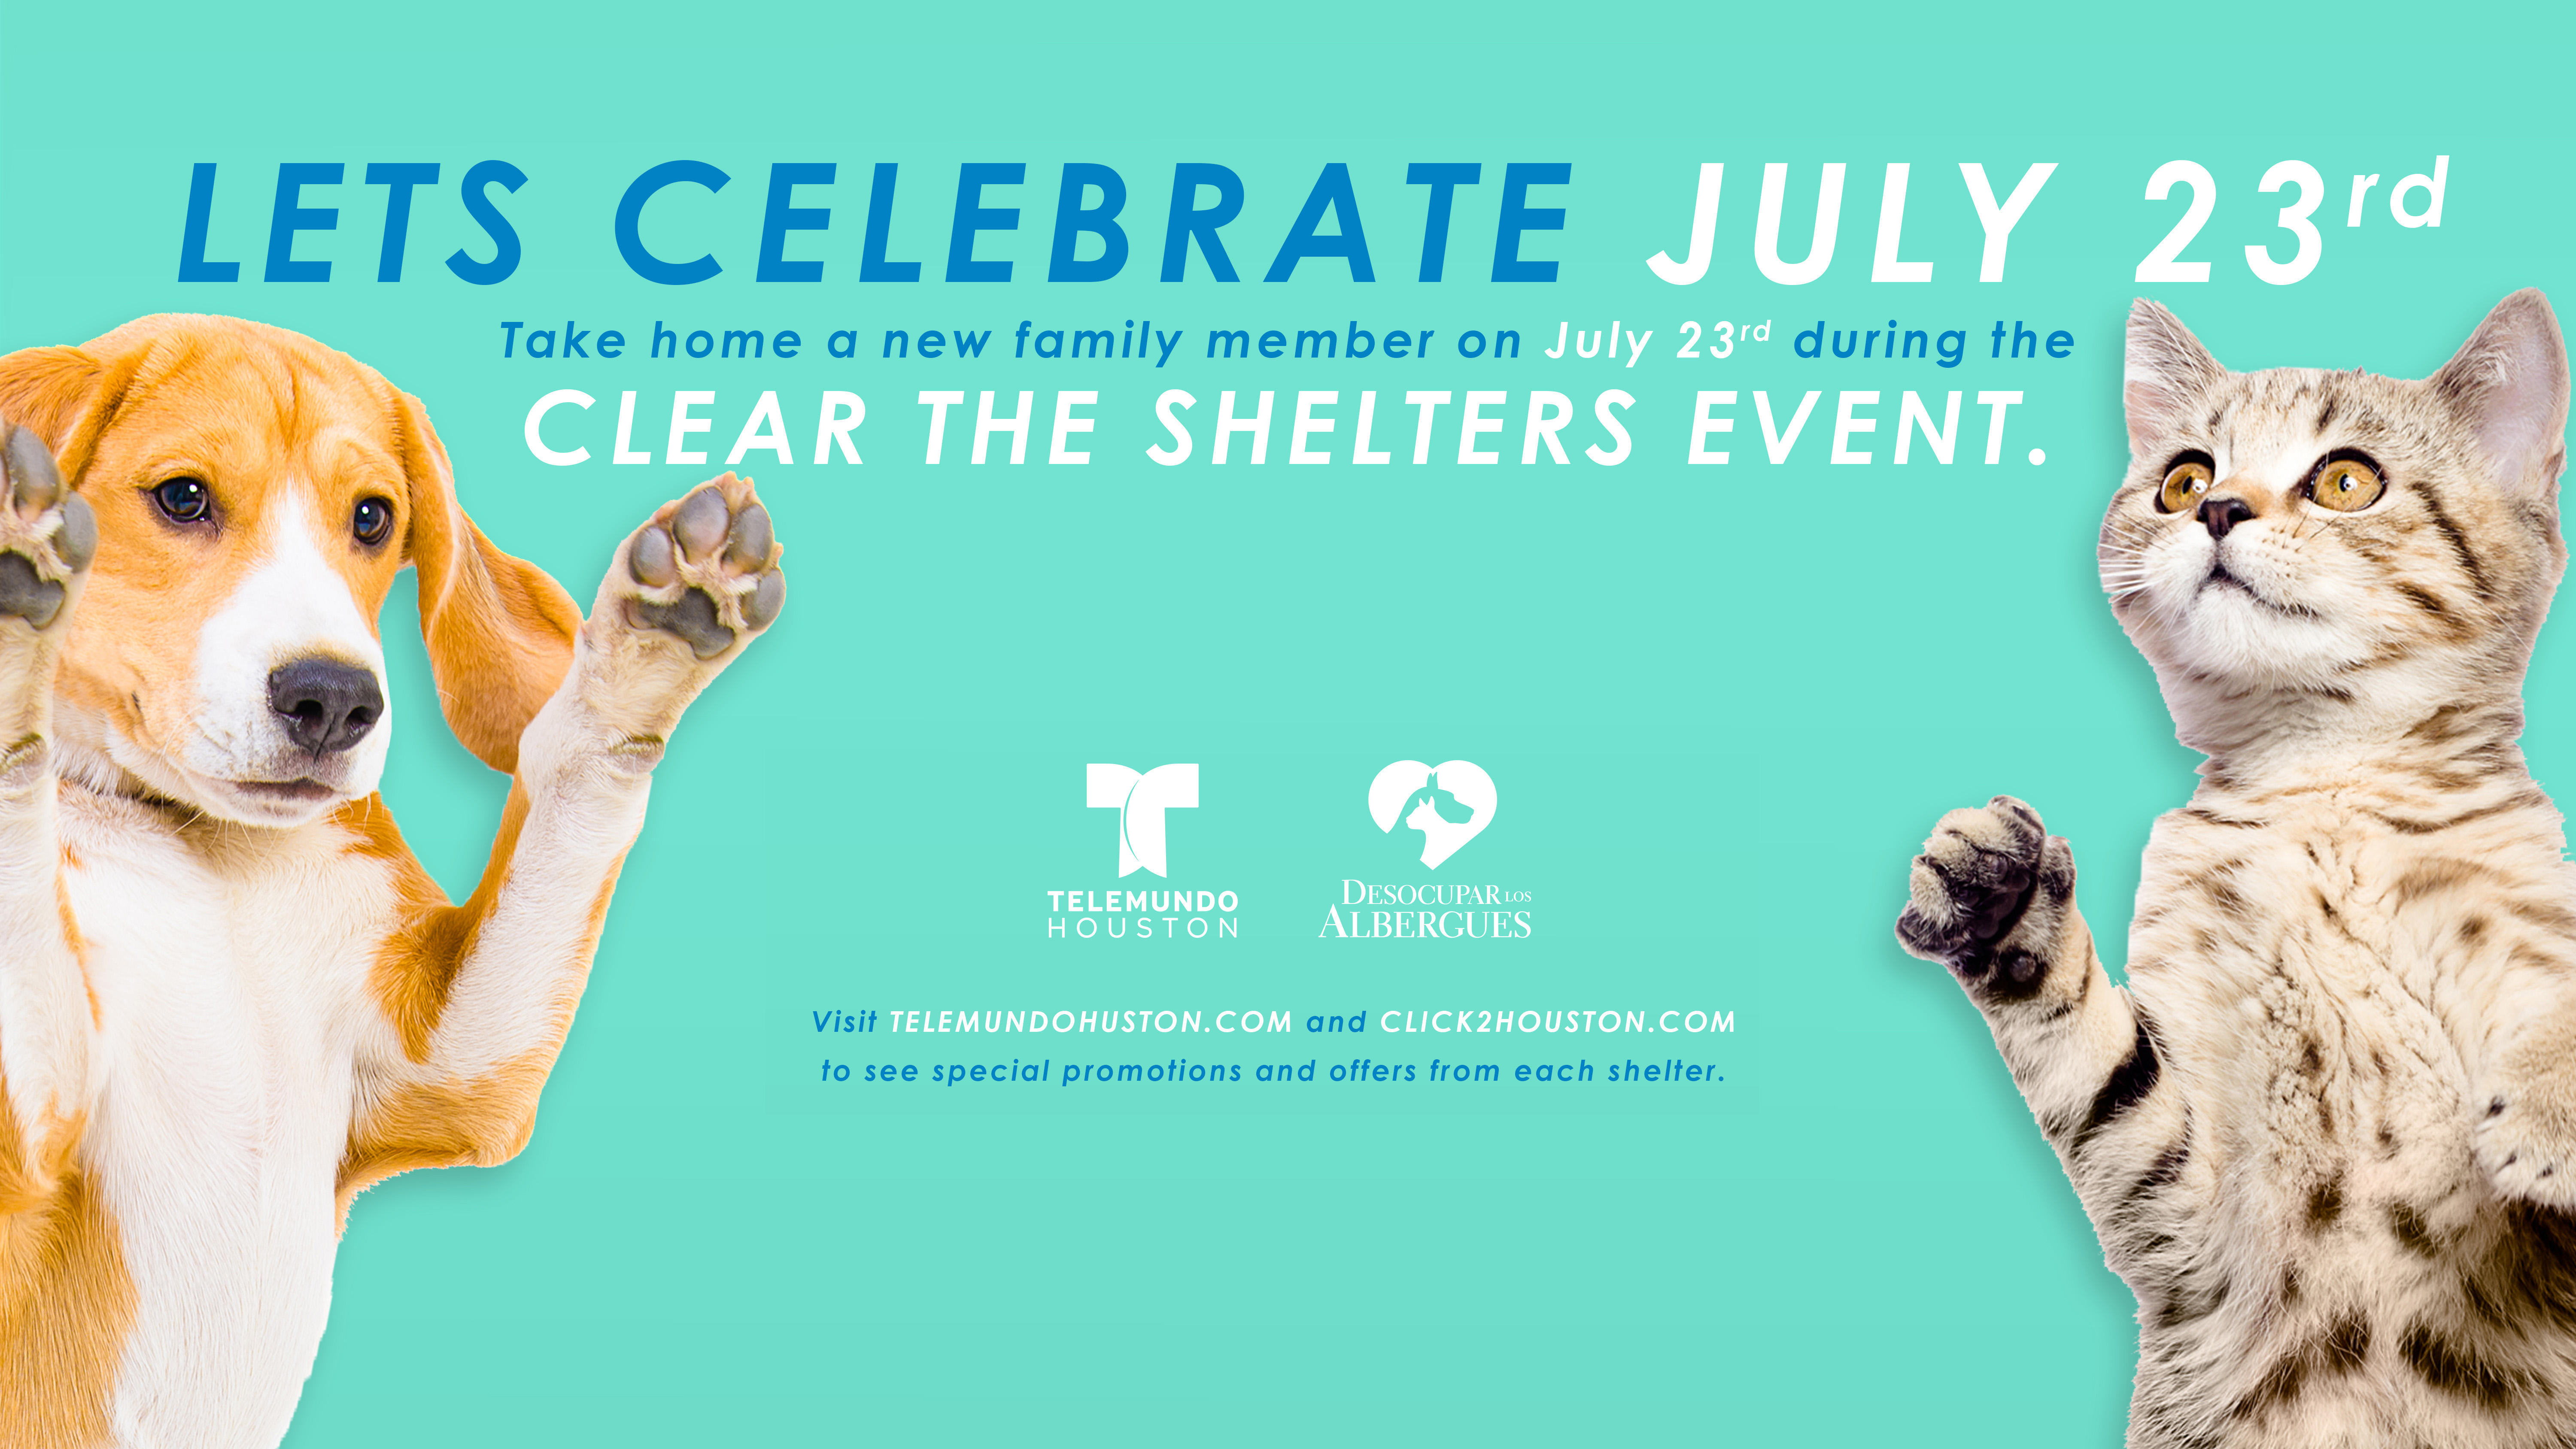 Help us Clear the Shelters July 23rd!